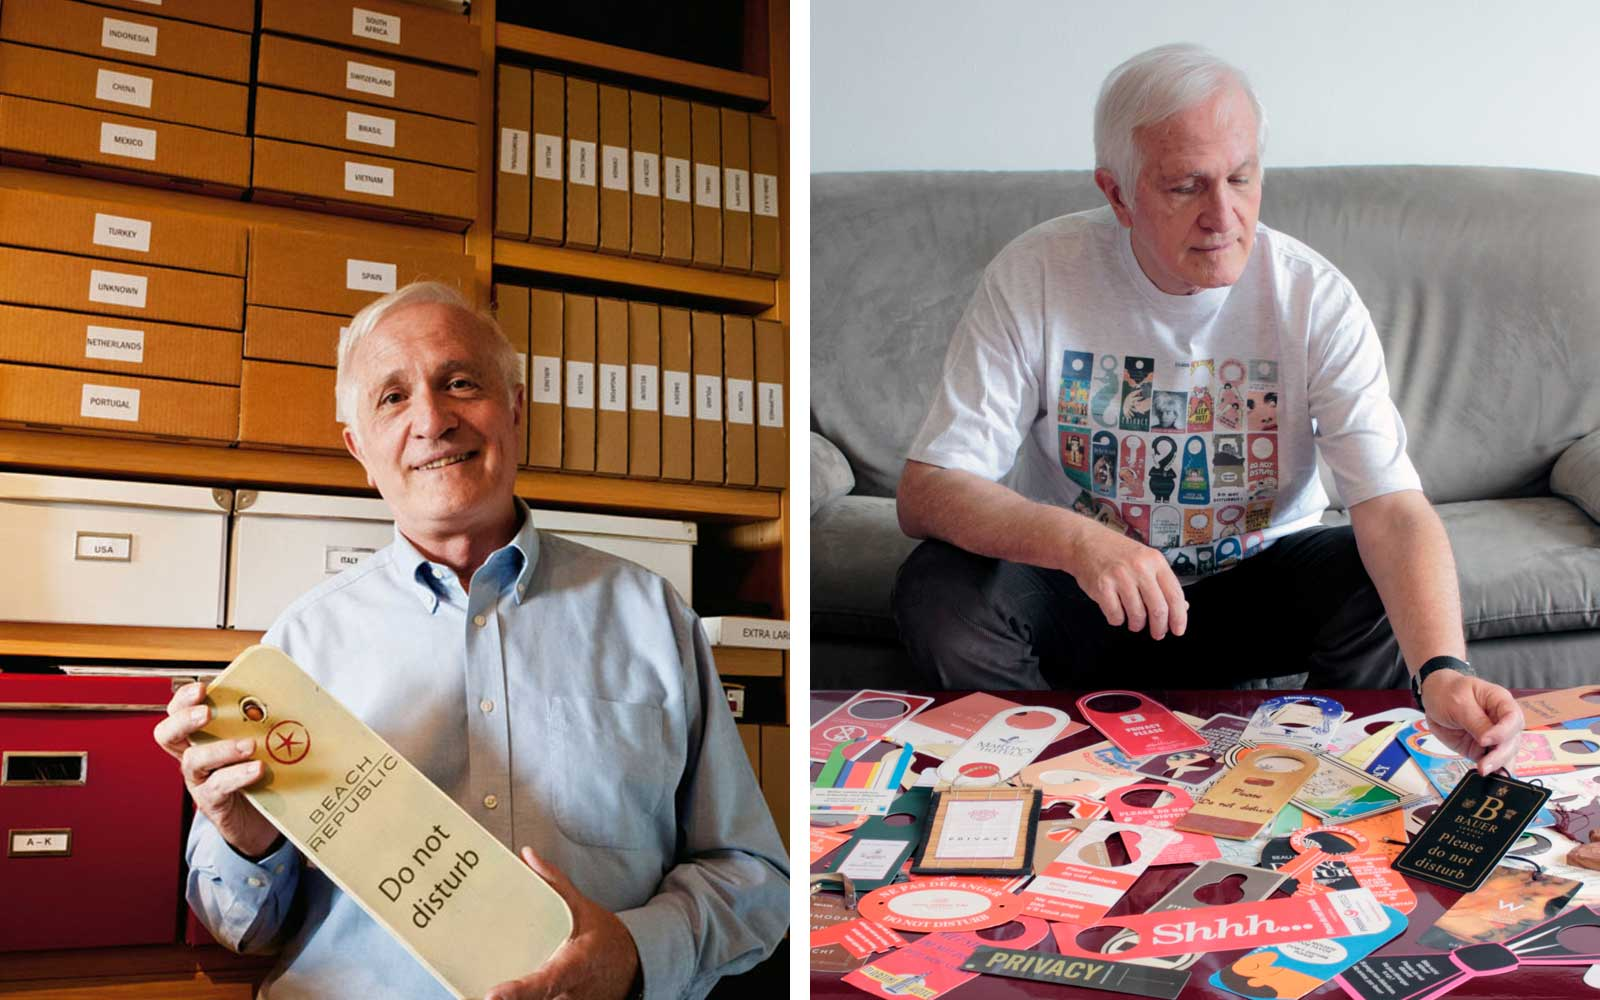 How One Man Amassed a Collection of 15,000 Do Not Disturb Signs